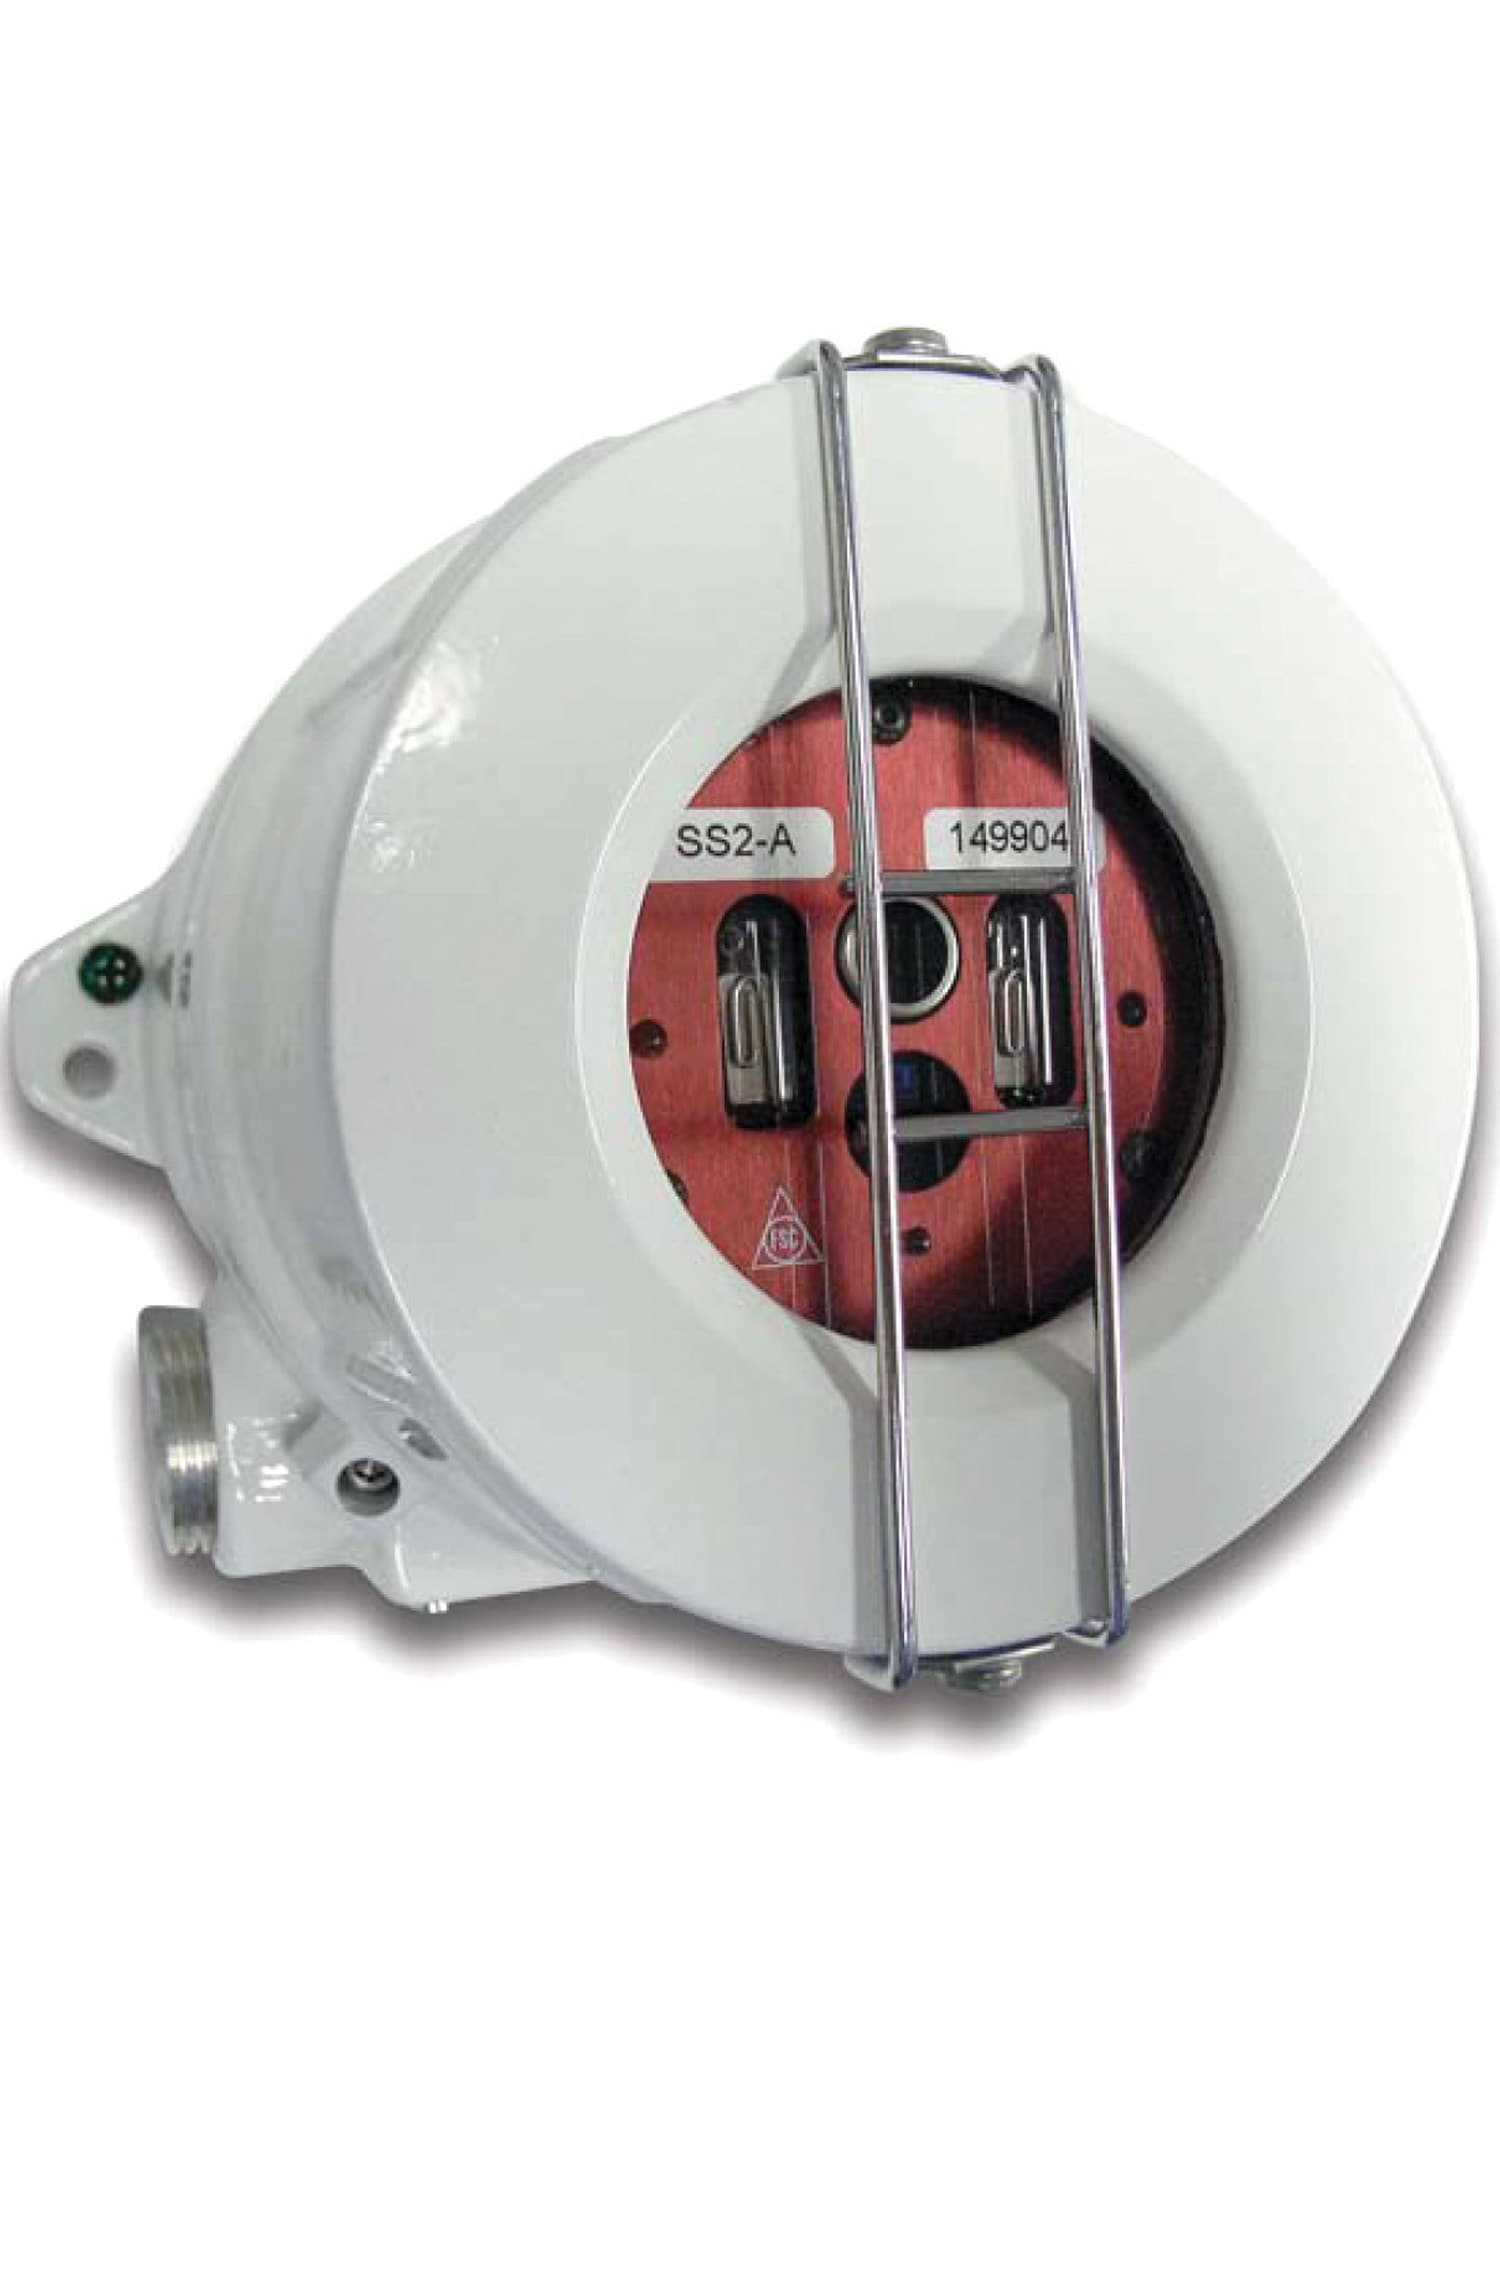 Fire Sentry SS2 Flame Detectors - Multi-spectrum flame detectors - Honeywell Analytics